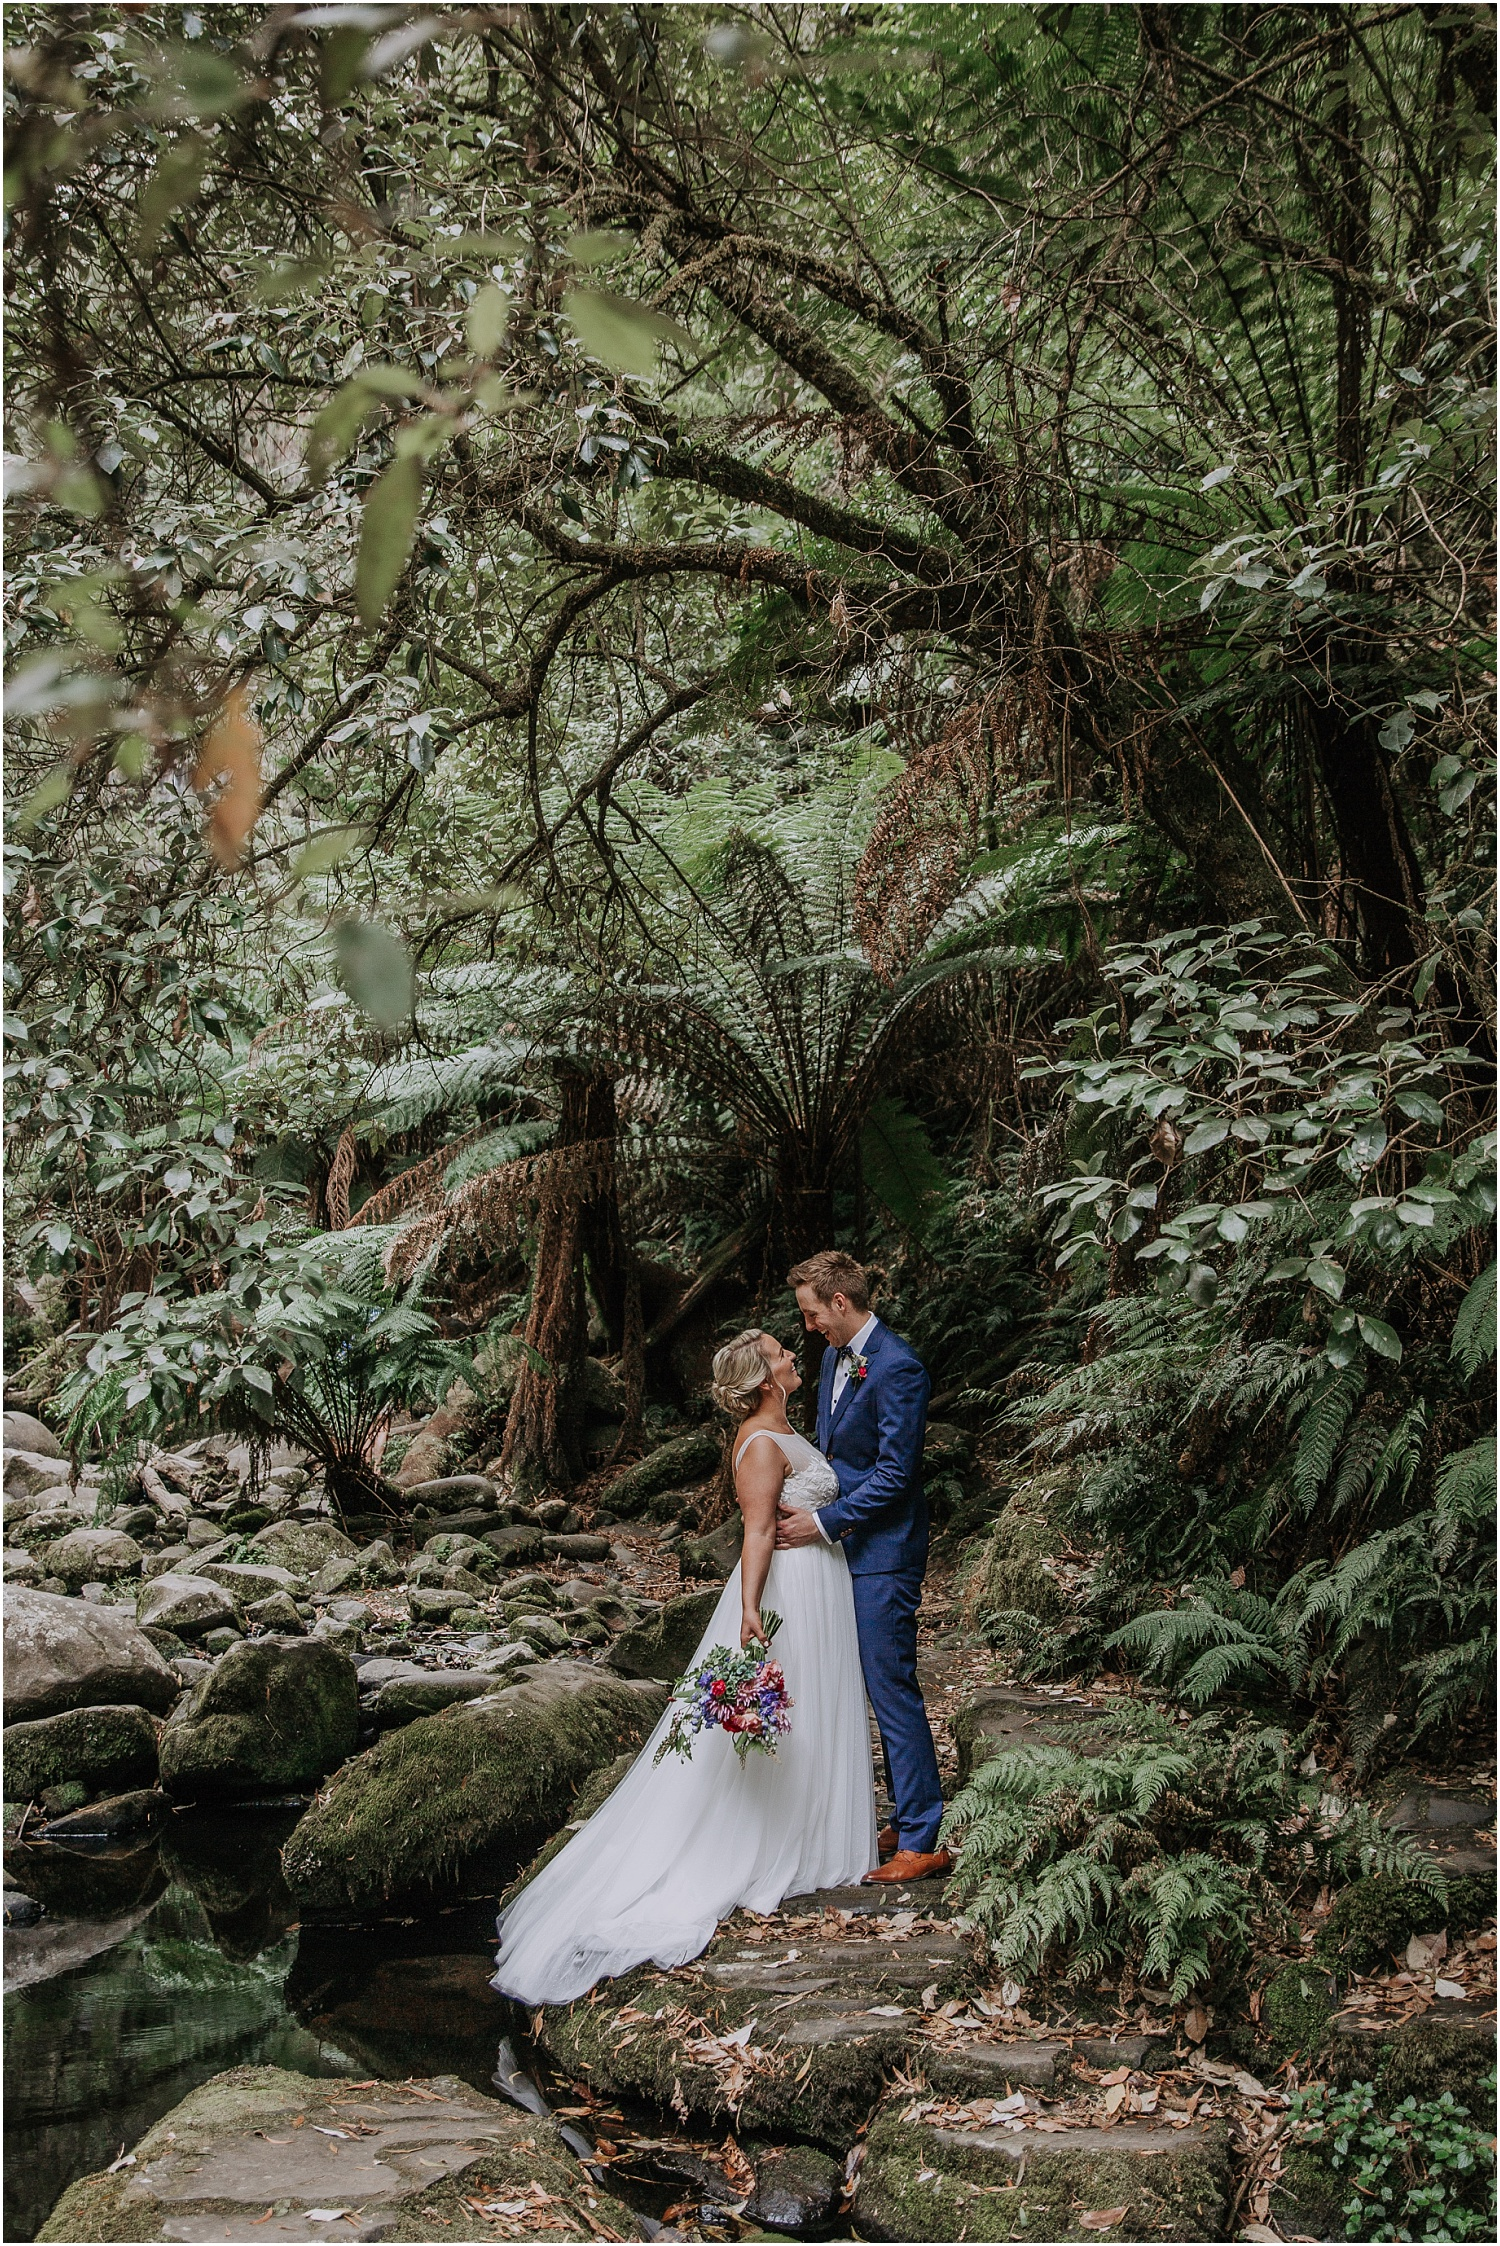 Ainslee and Warwick's elopement at Erskin Falls and the Lorne Beach Pavilion on the Great Ocean Road._0081.jpg